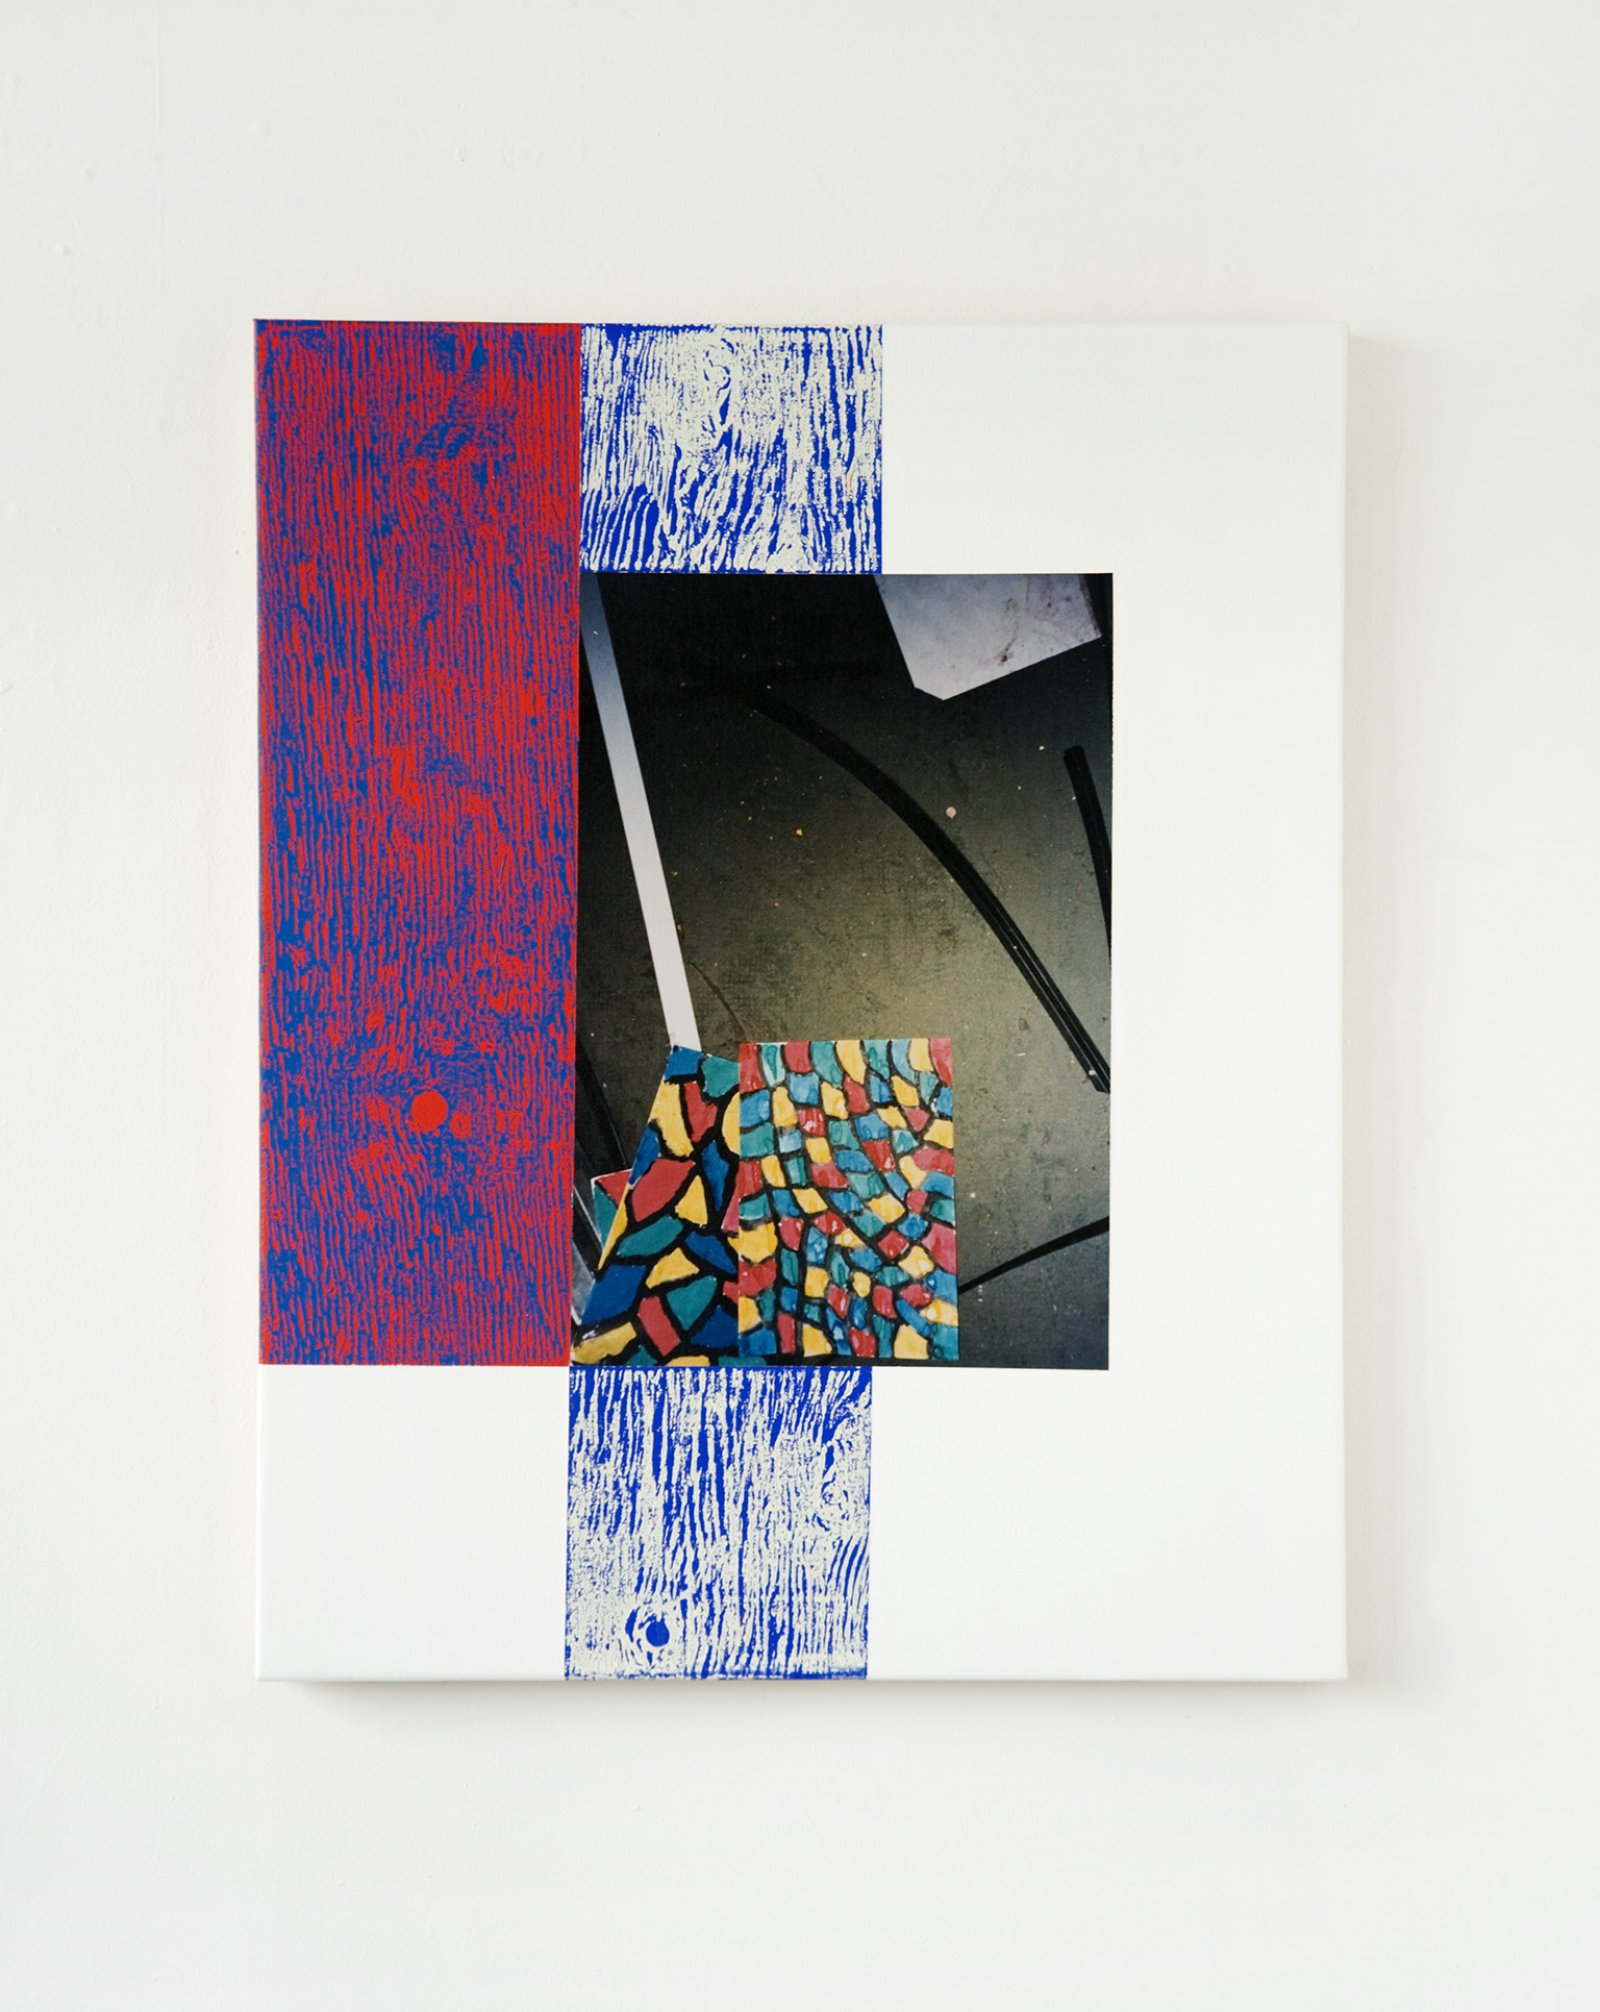 Ian Wallace,Abstract Art V, 1999, photolaminate with acrylic on canvas, 30 x 24 in. (76 x 61 cm)